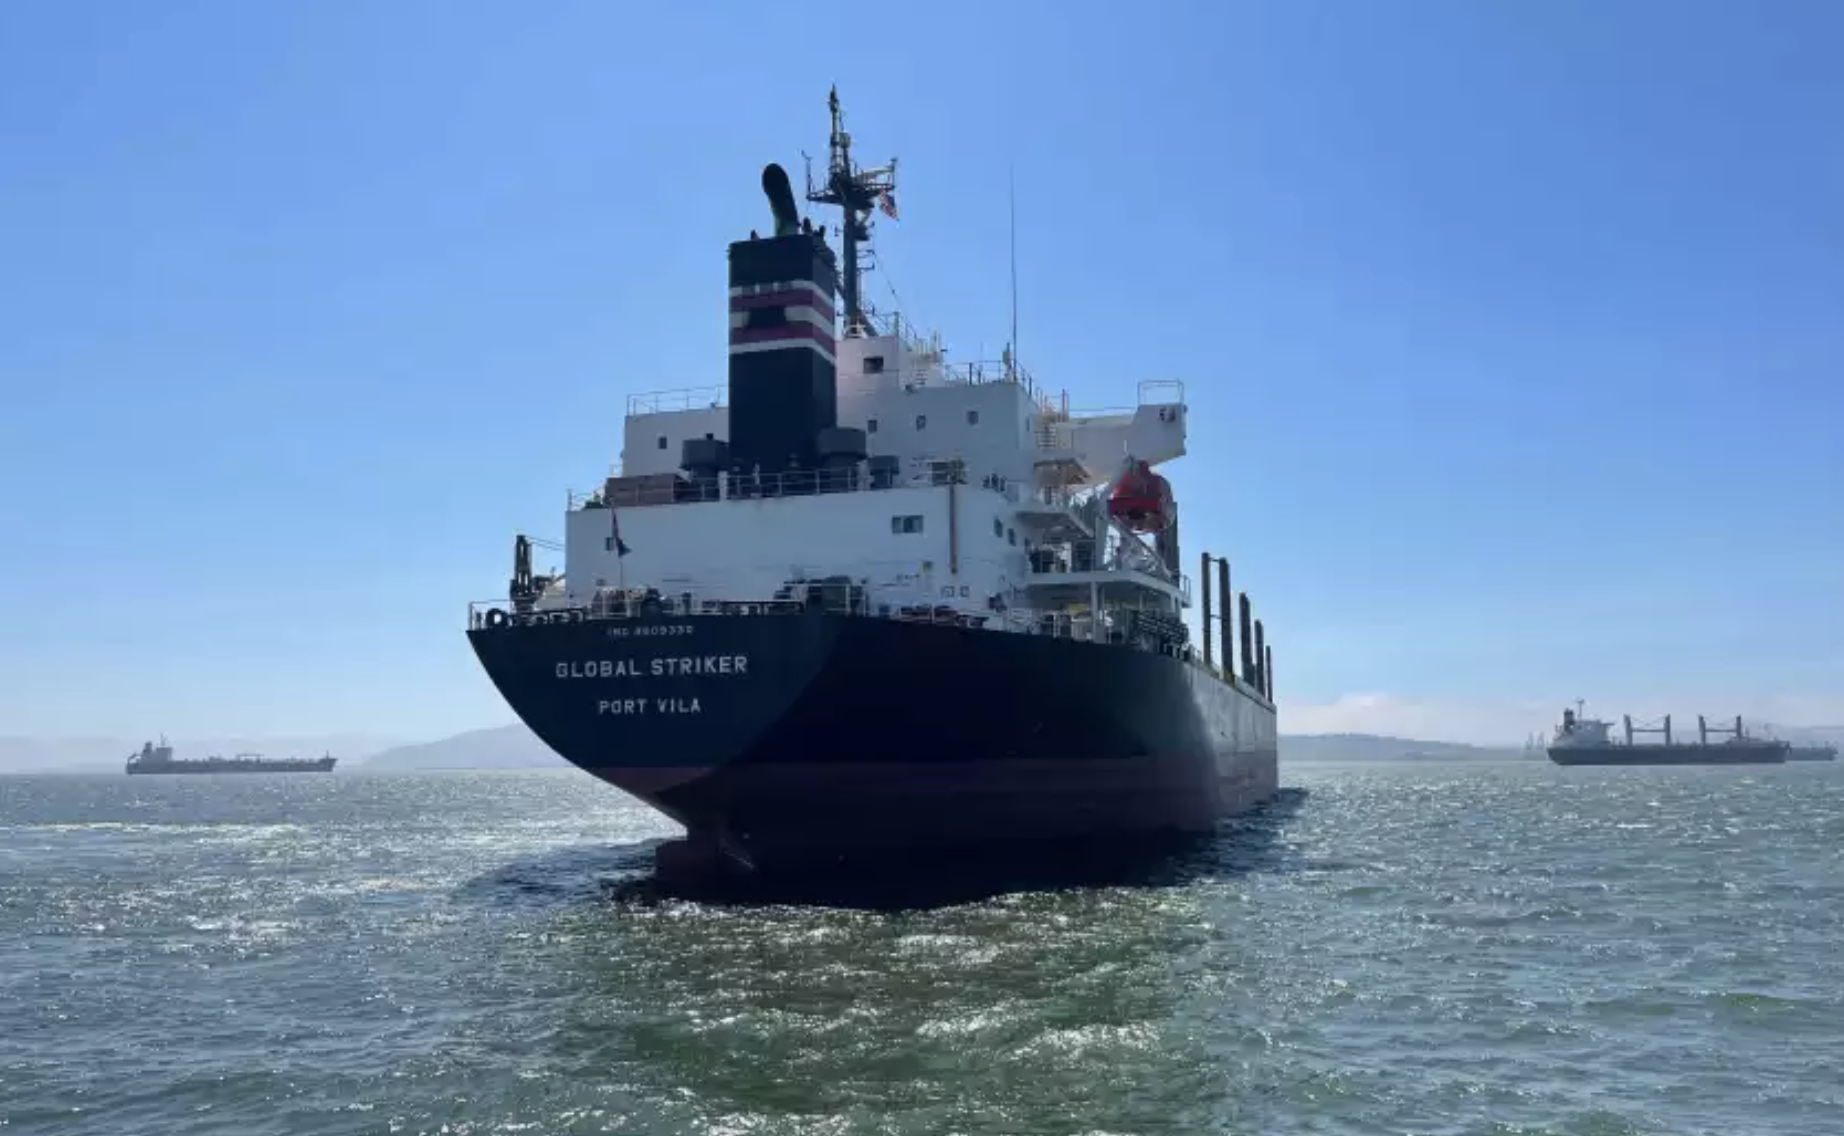 Six crew members of the Global Striker ship were transported to San Francisco hospitals to be treated for COVID-19.(San Francisco Fire Department via L.A. Times)